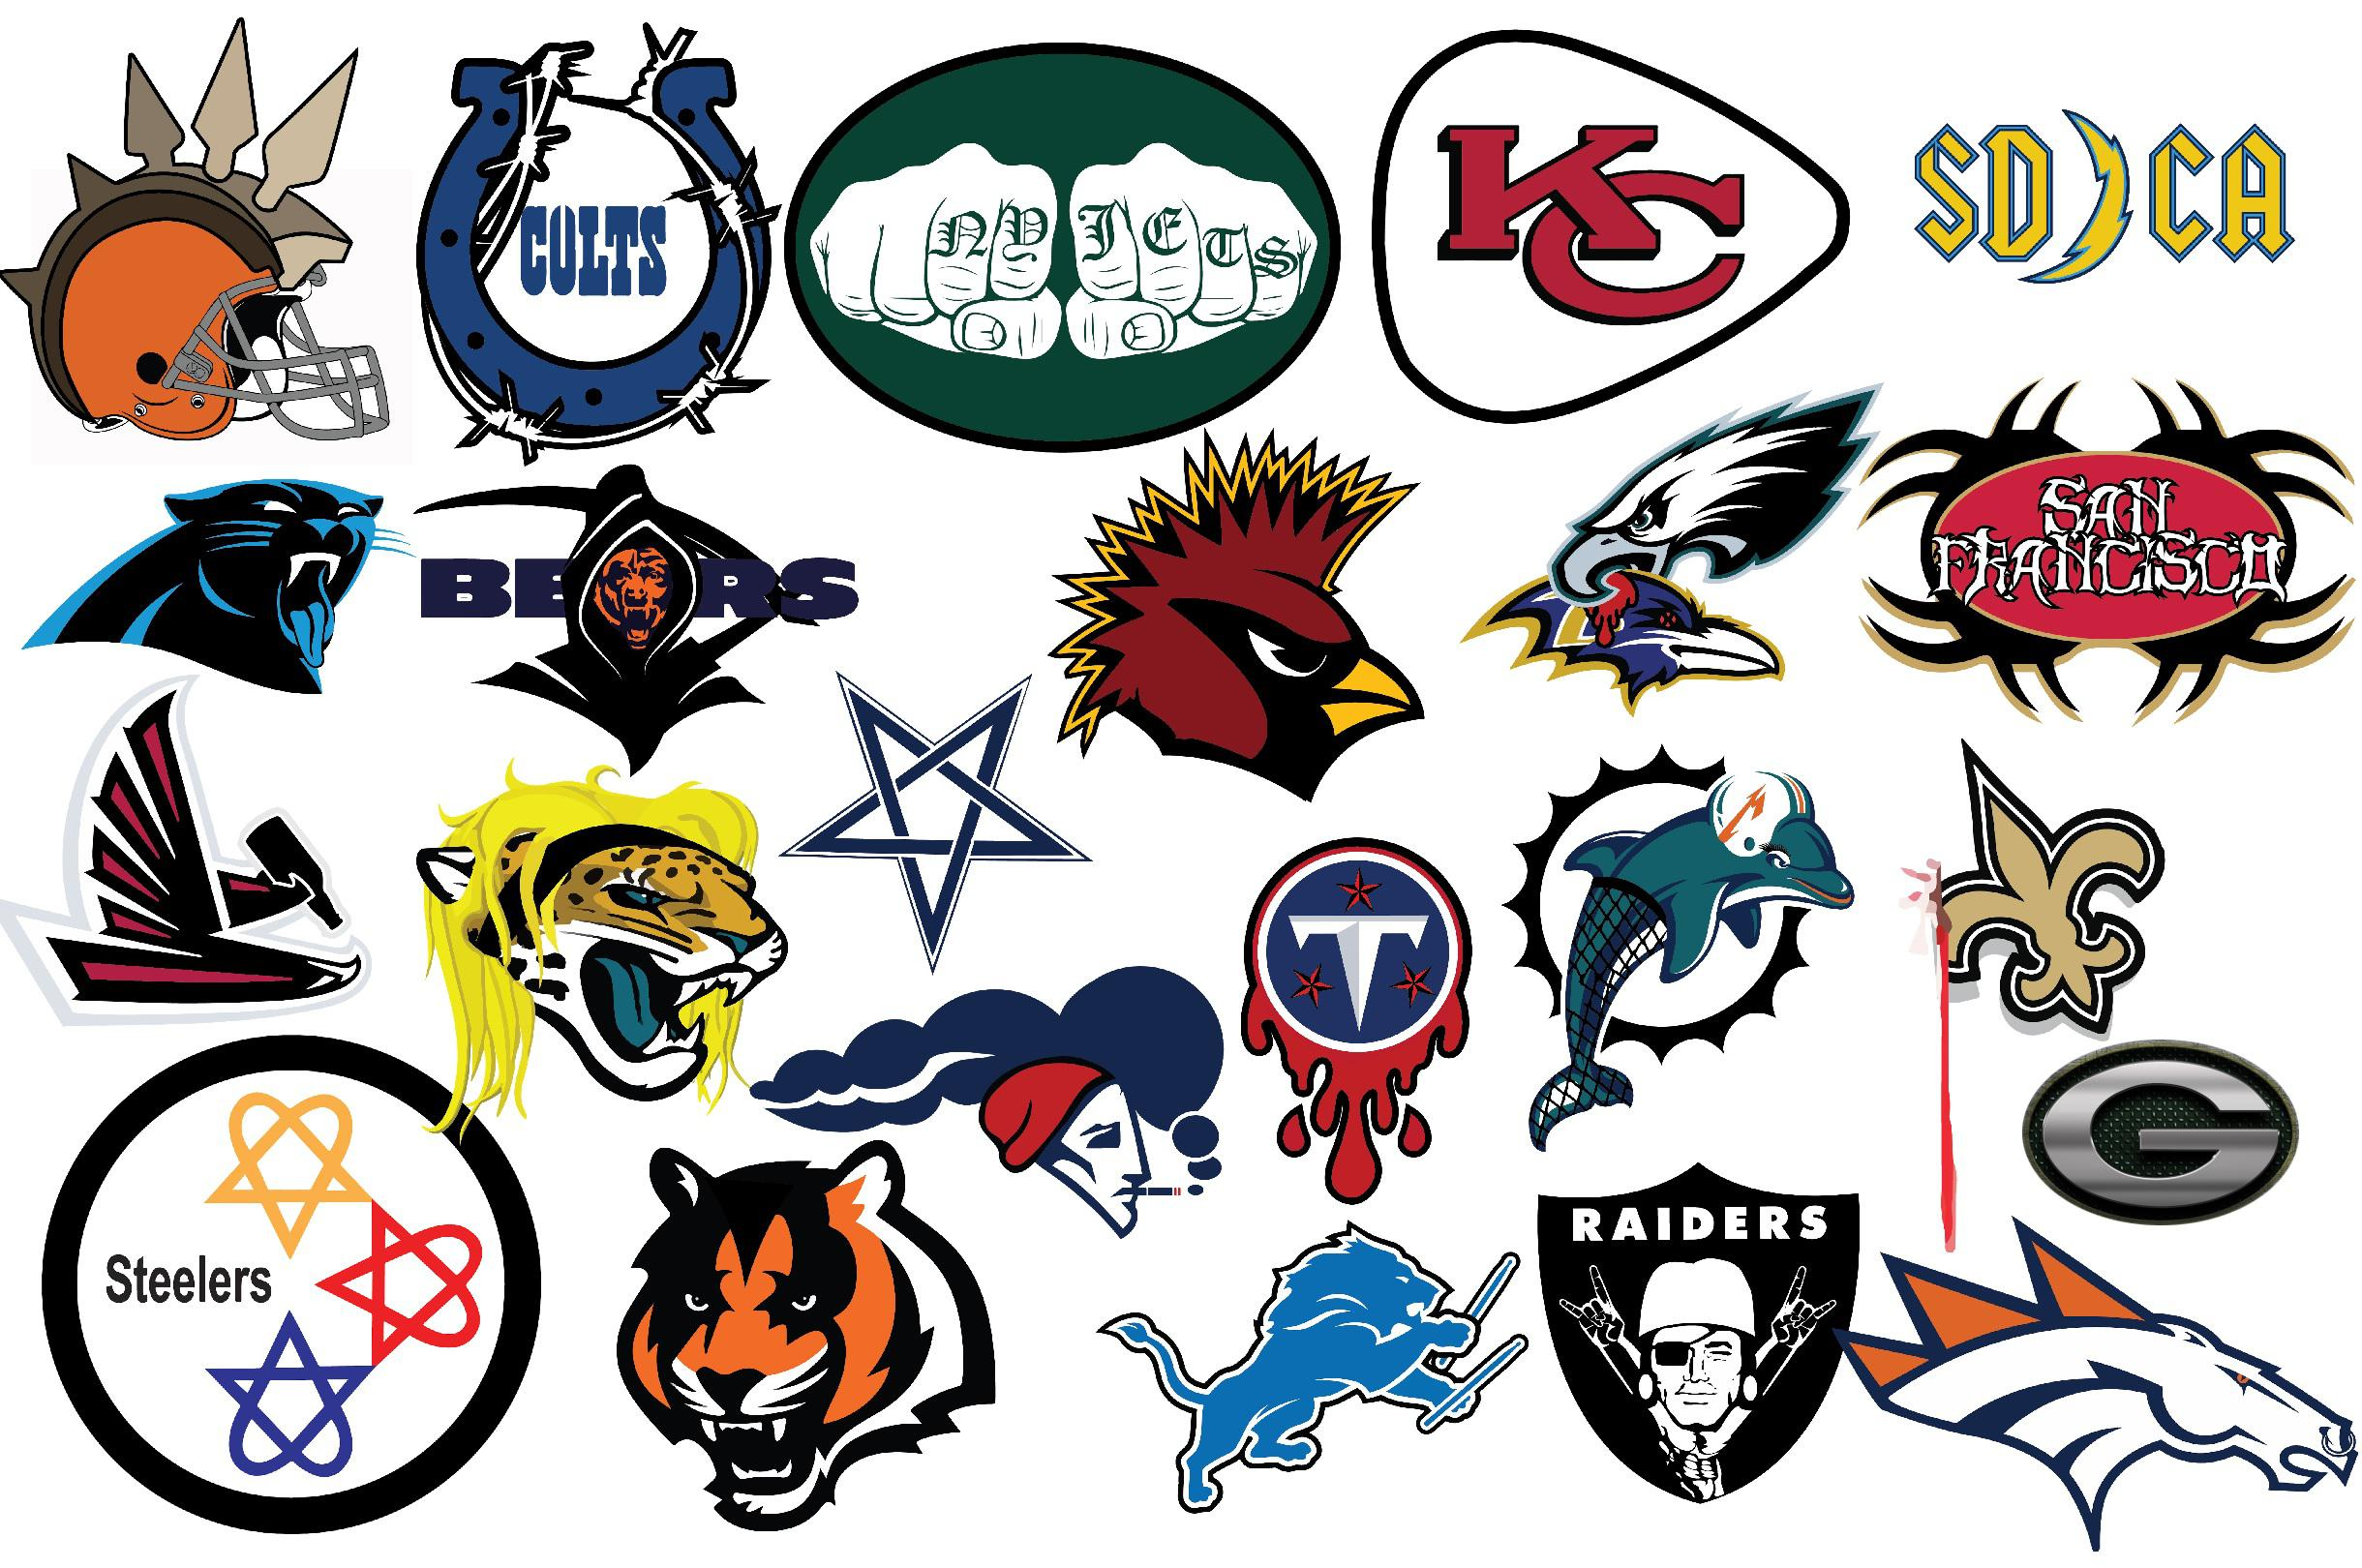 All Nfl Teams Logos Redesigned As Metal Bands